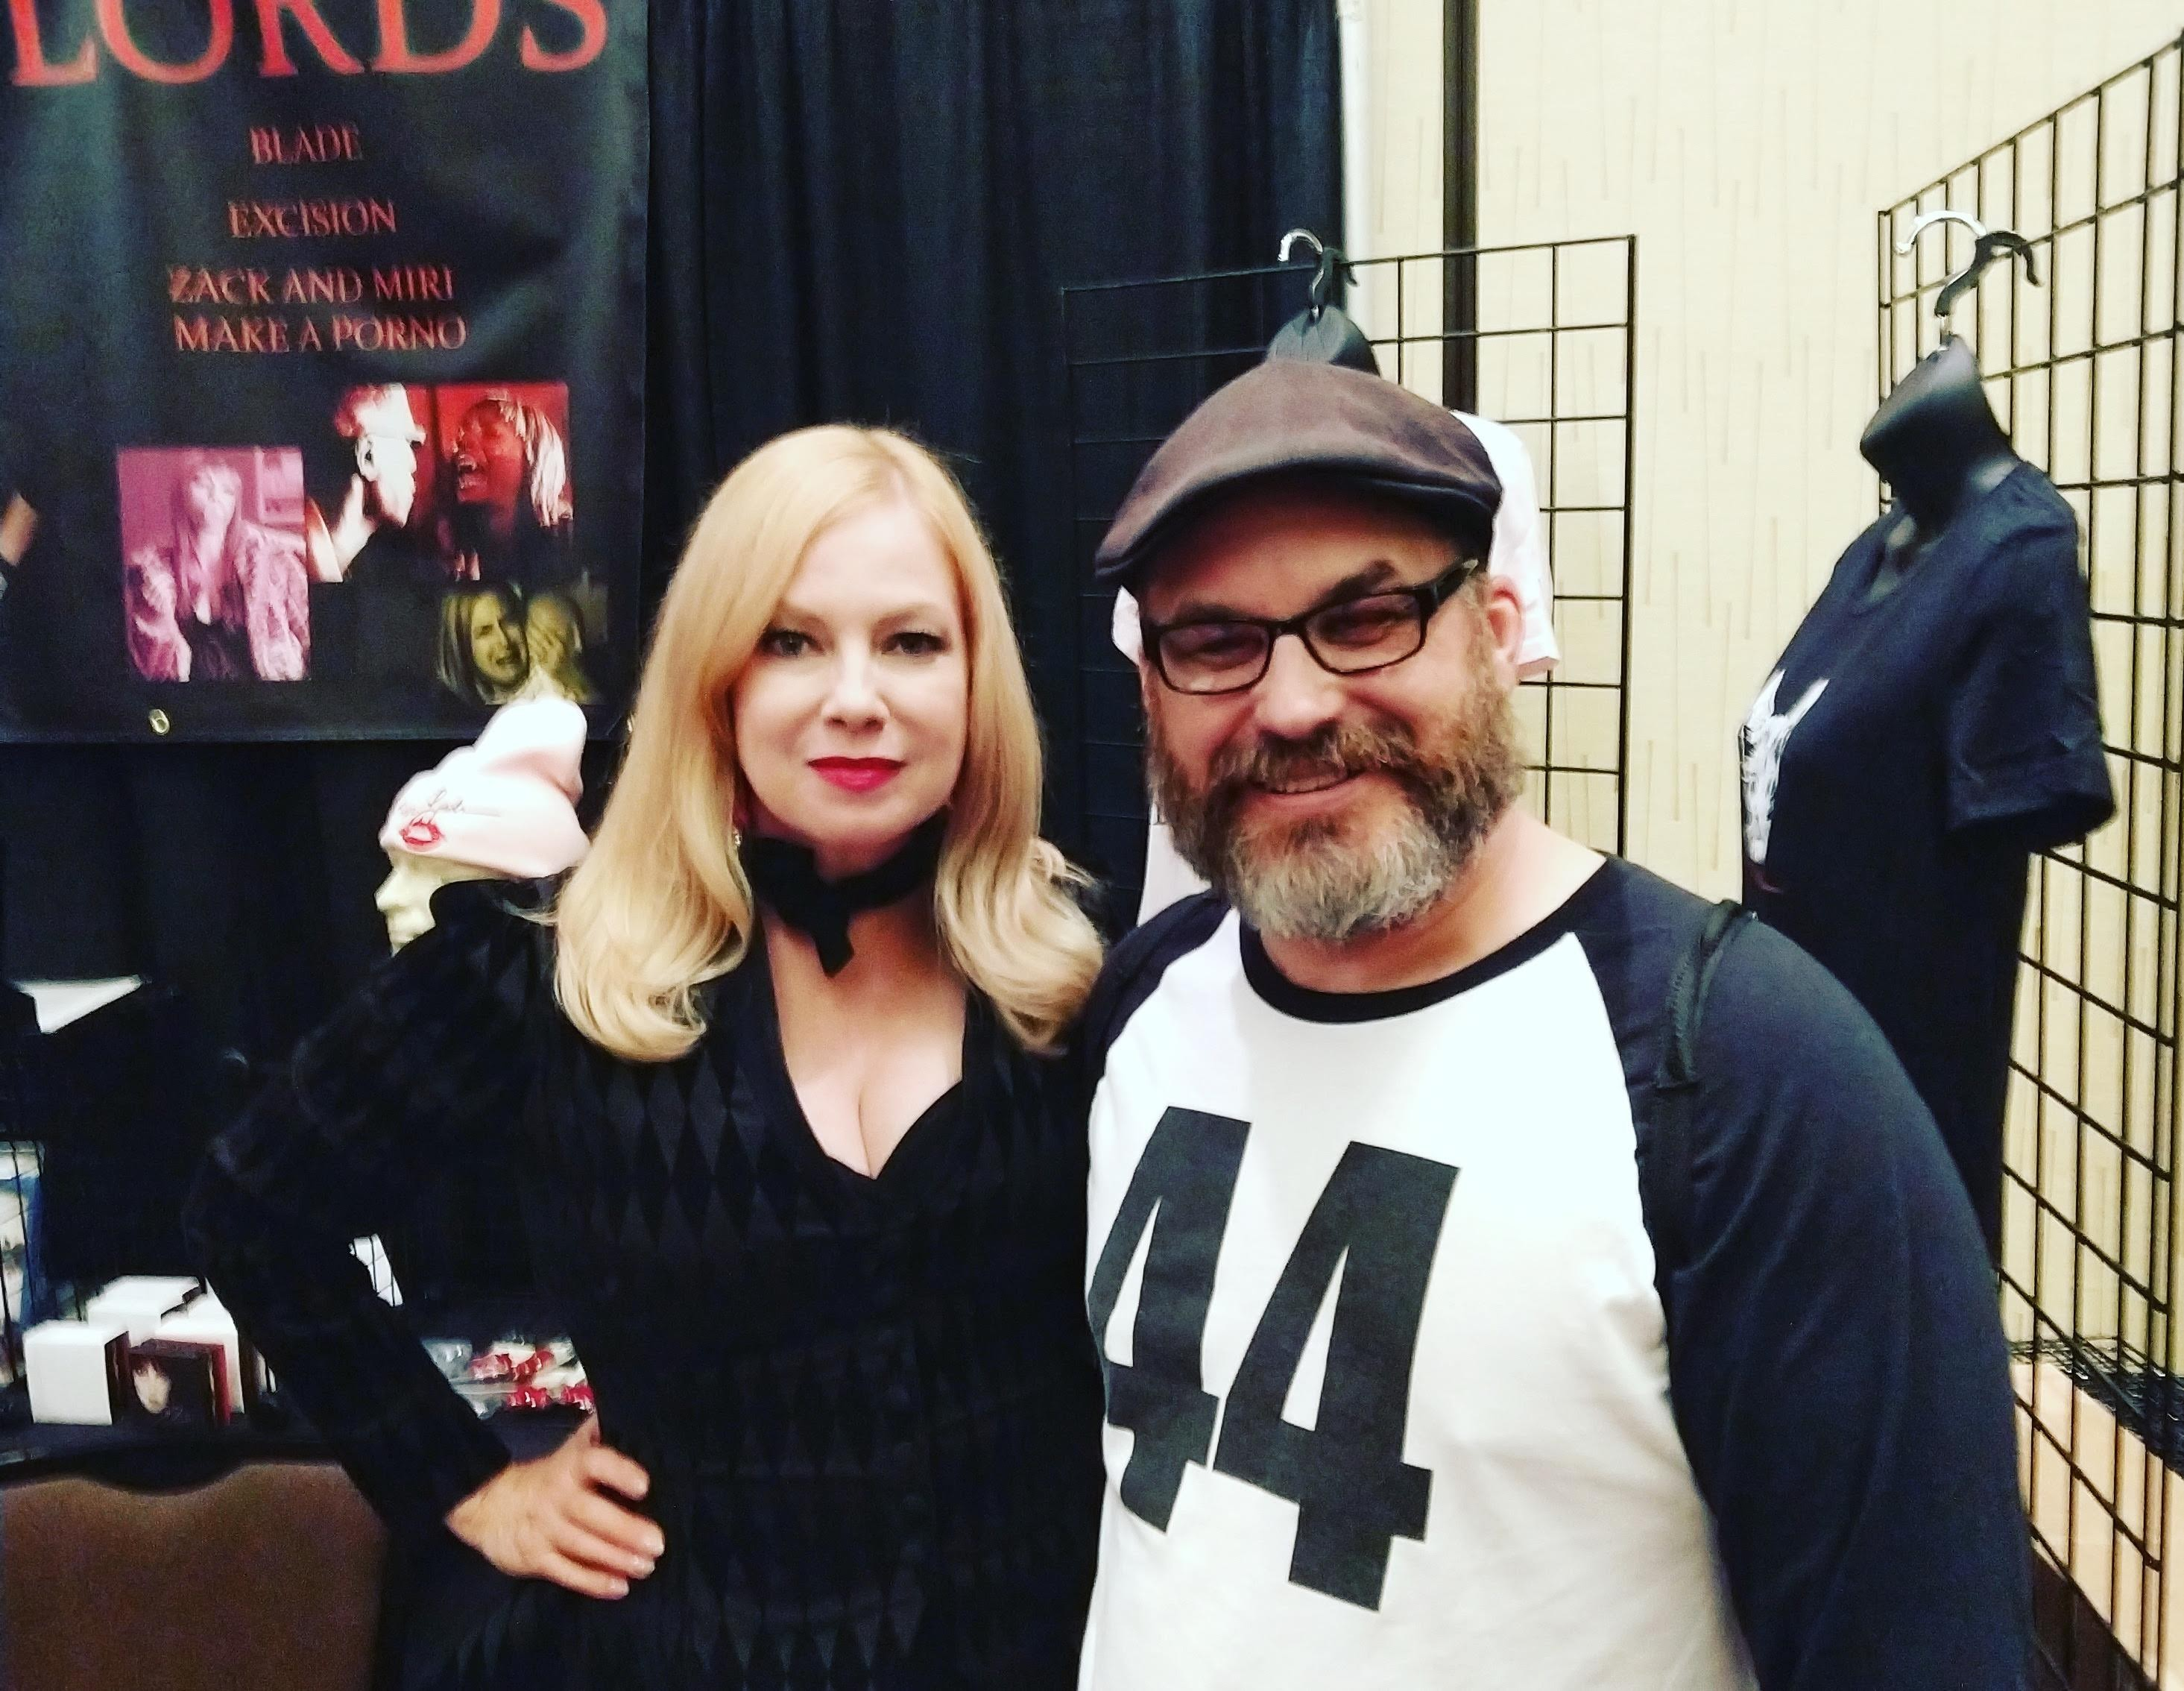 Posing with Traci Lords